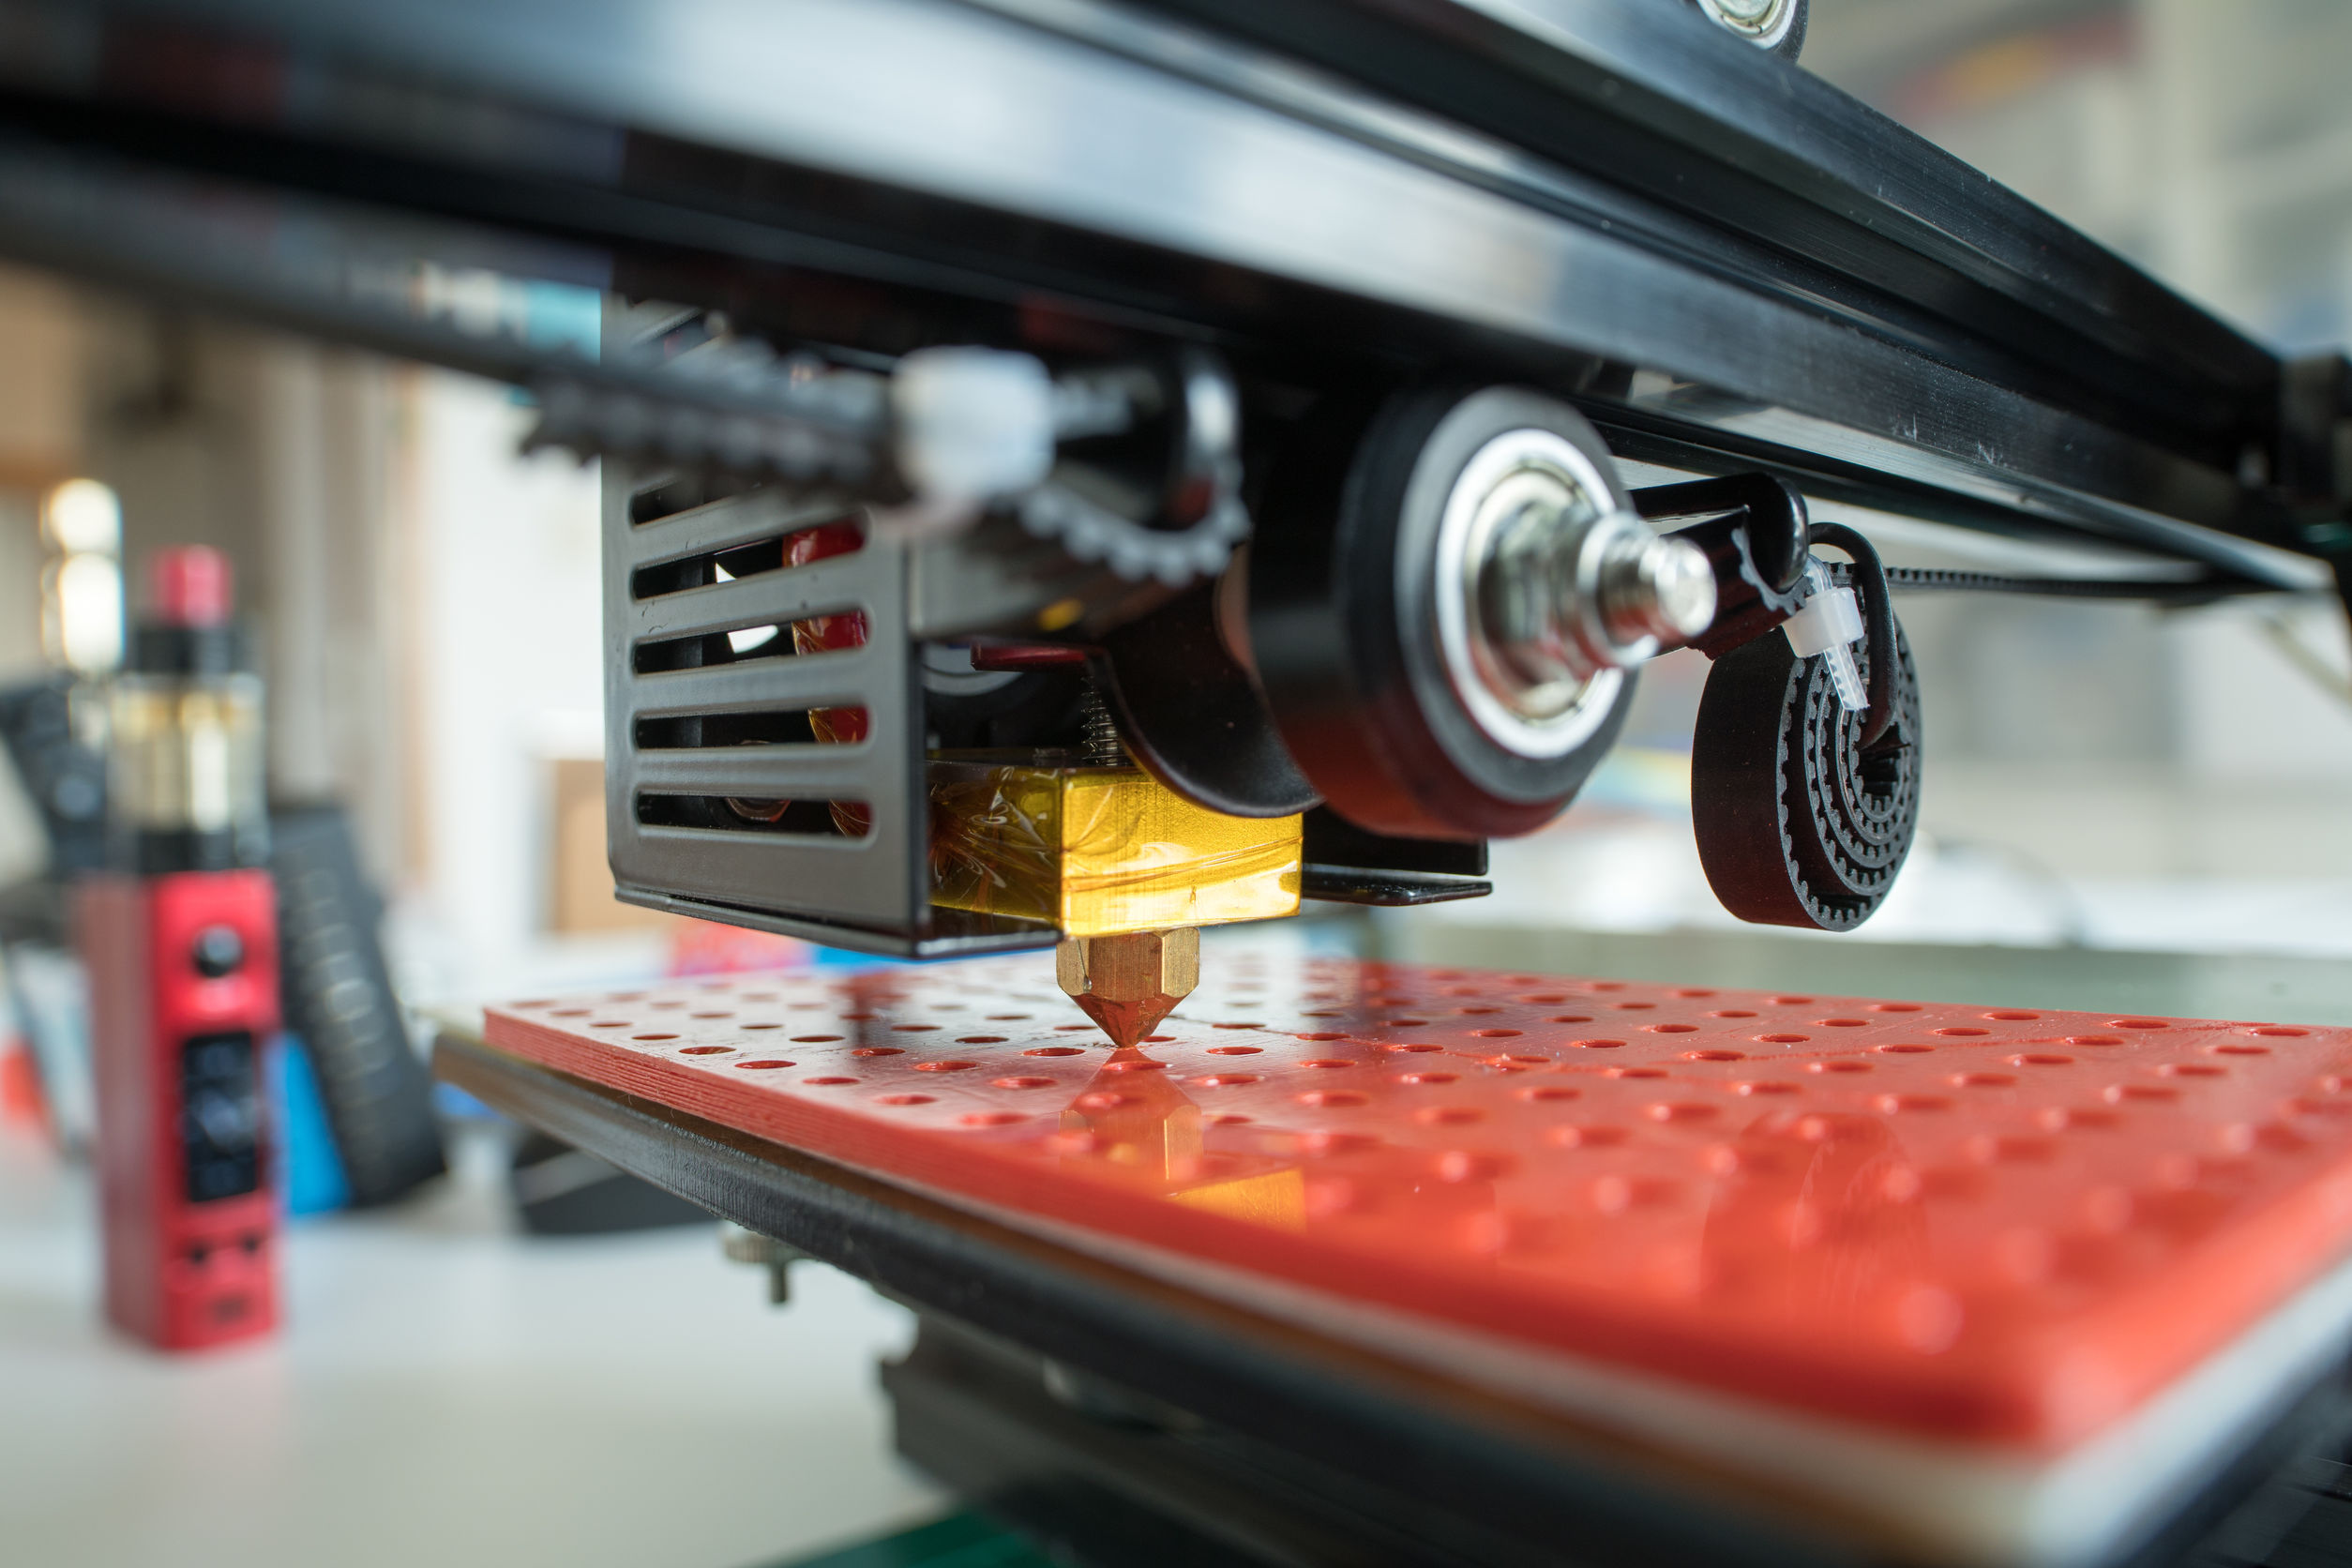 Best 3D Printer 2020: Shopping Guide & Review